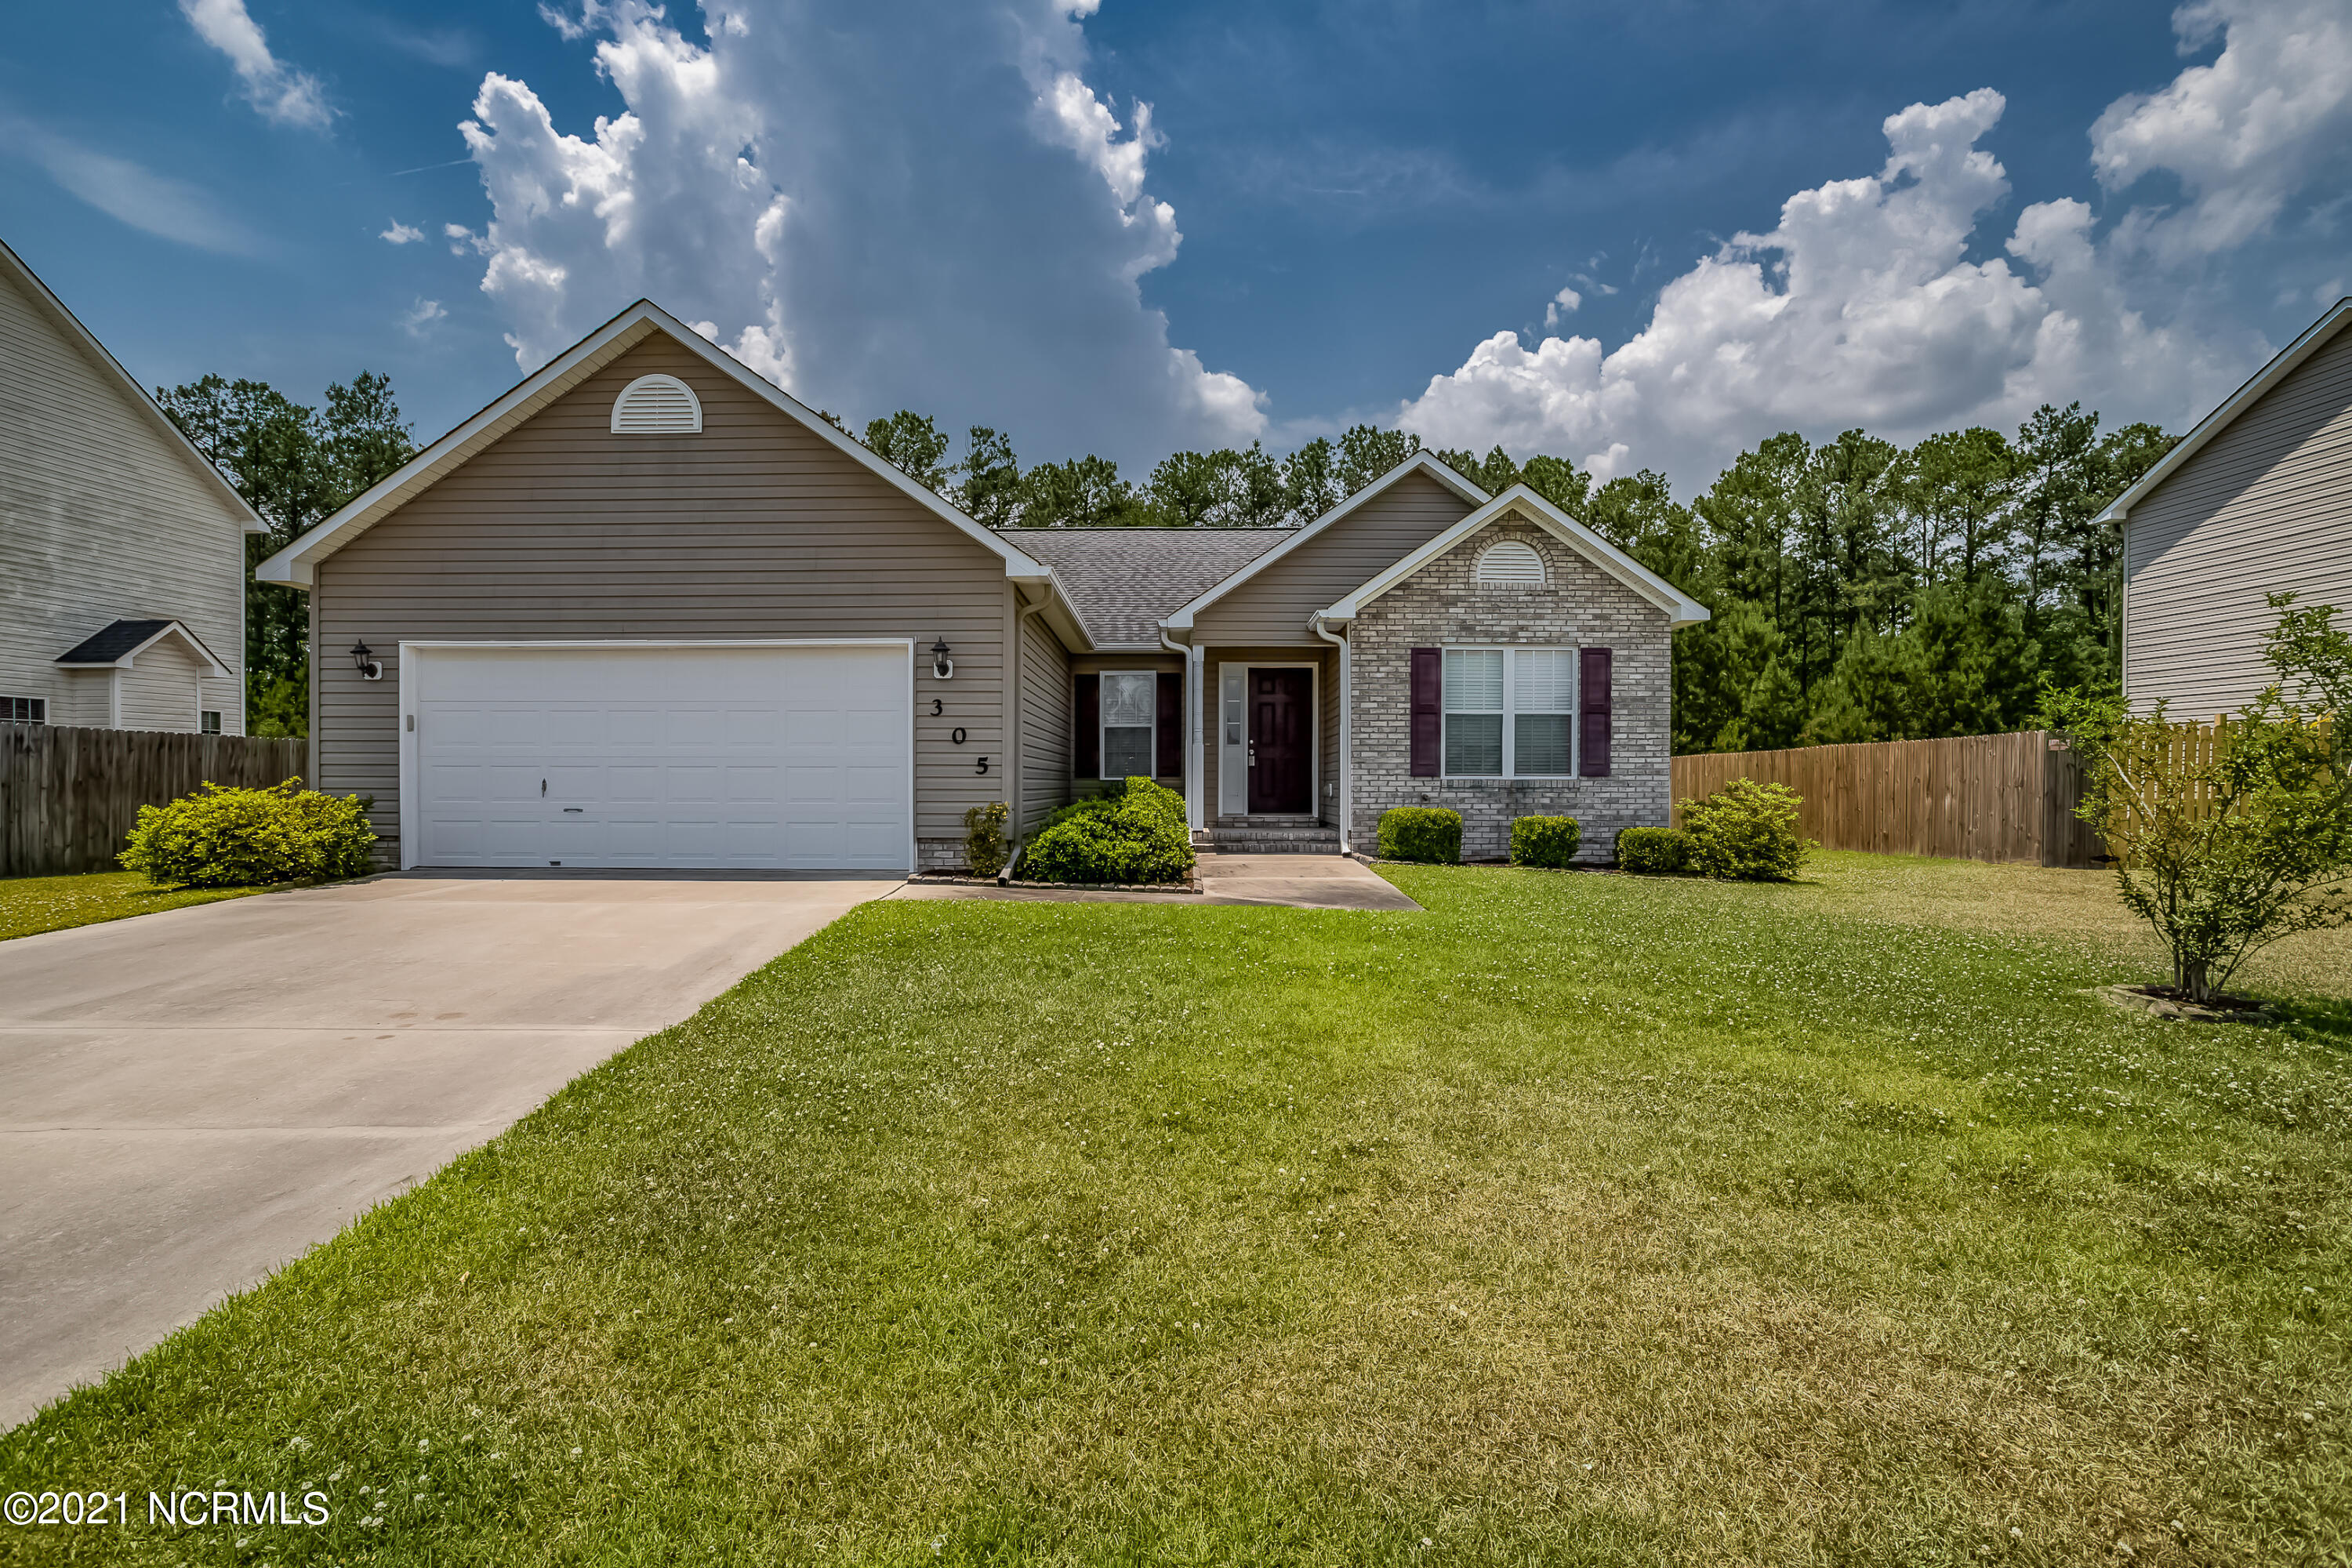 Honey STOP THE CAR!!!  Welcome to this beautiful 3 bedroom 2 Full bath home in Carolina Forest!  This house is in pristine condition and ready for your family today!  The bedrooms are nicely sized with ample closet space.  The master bedroom is quite large with ensuite bath and soaking tub!  You will enjoy this open floor plan so you can cook, catch the score of the game and not miss a beat!  This house has a very nice large backyard with beautiful woods.  Don't let this beauty get away!